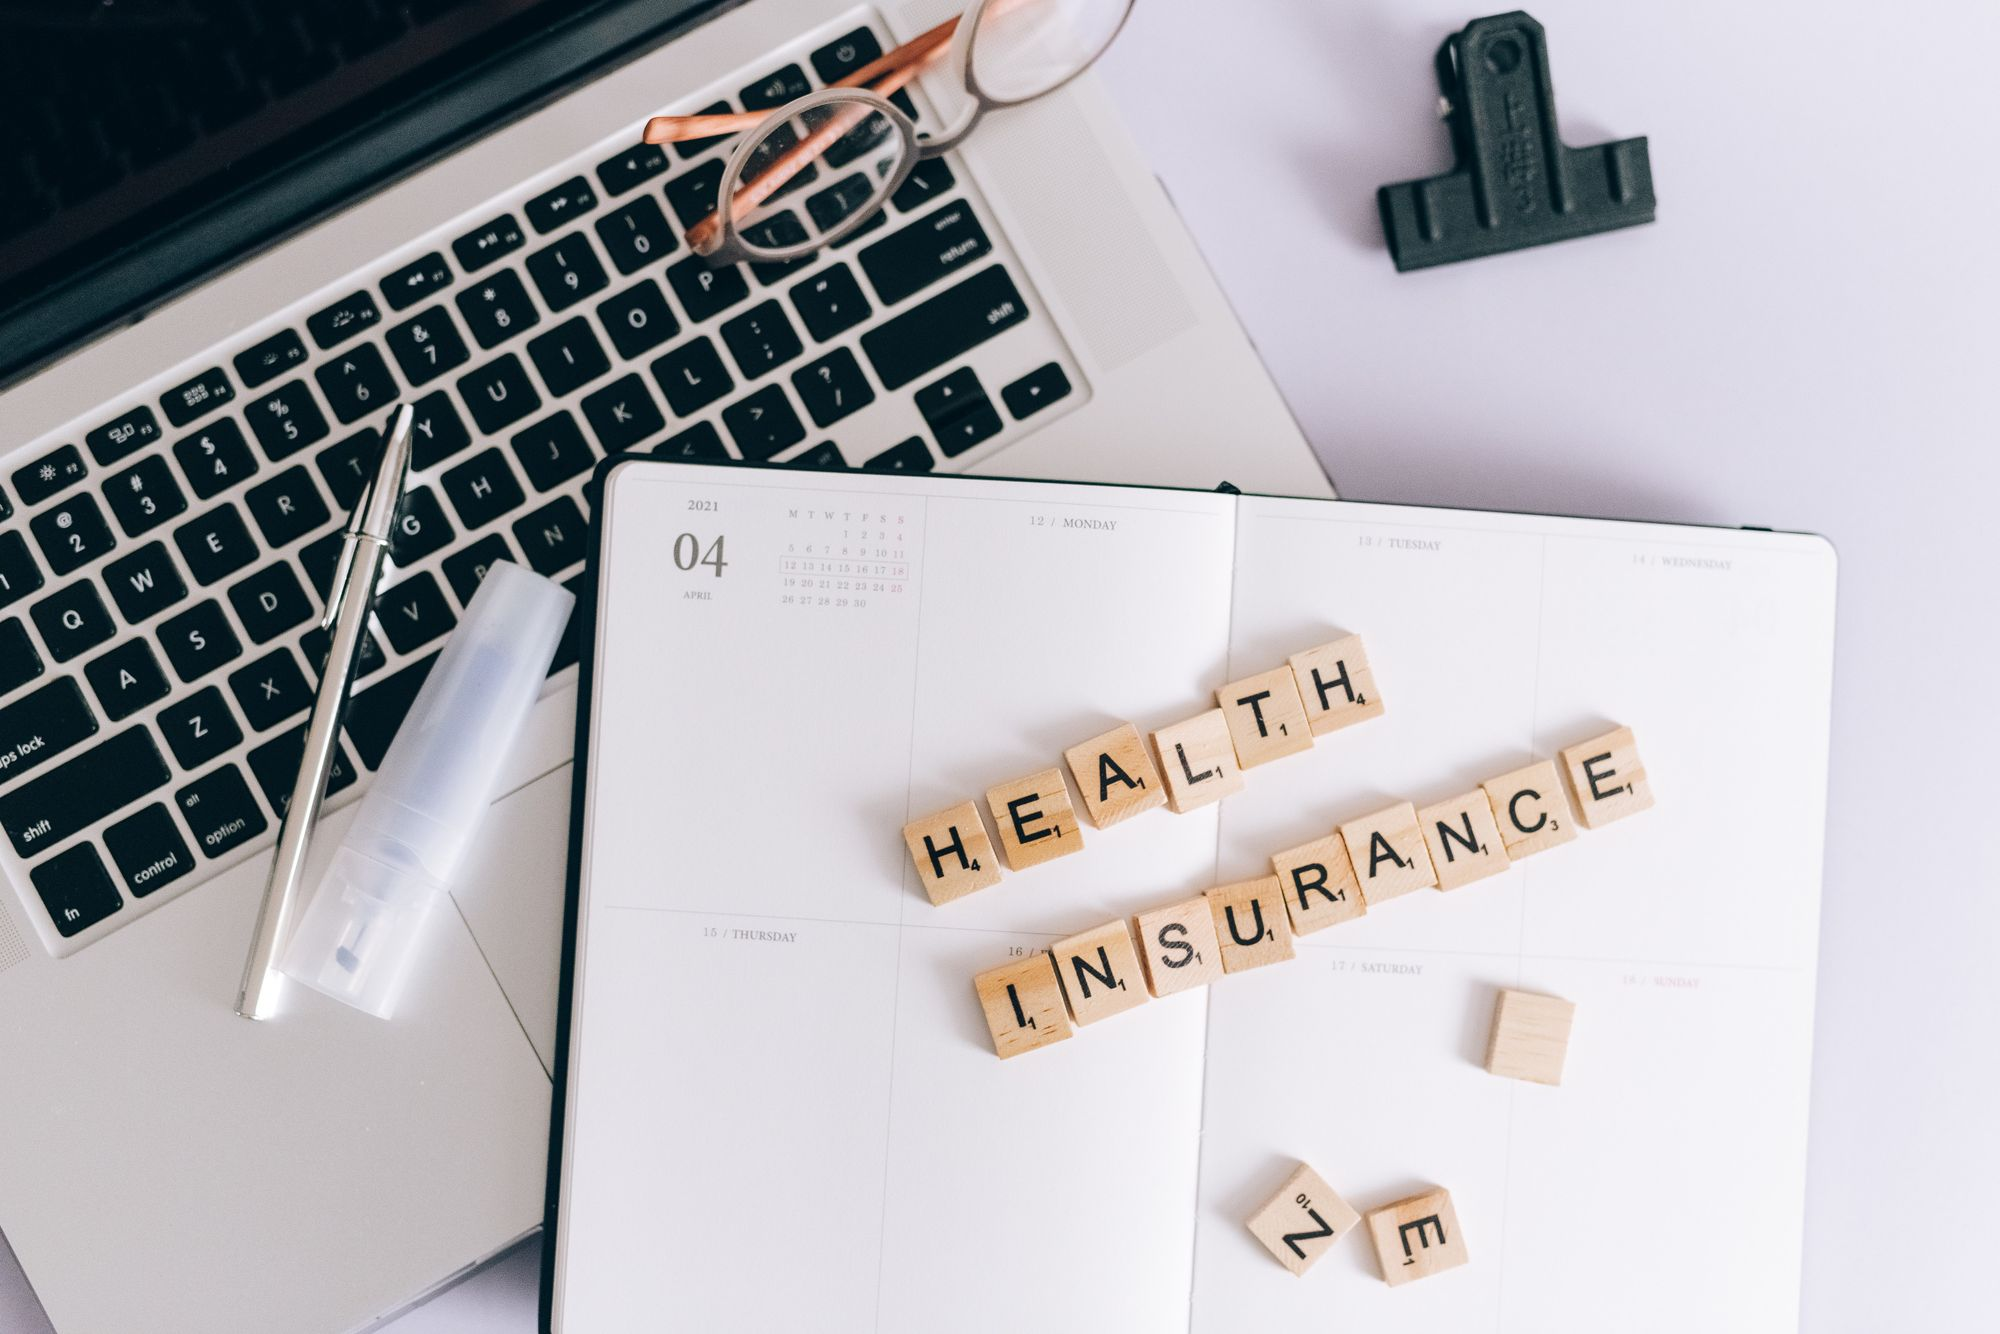 10 HEALTH INSURANCE TERMS YOU SHOULD KNOW